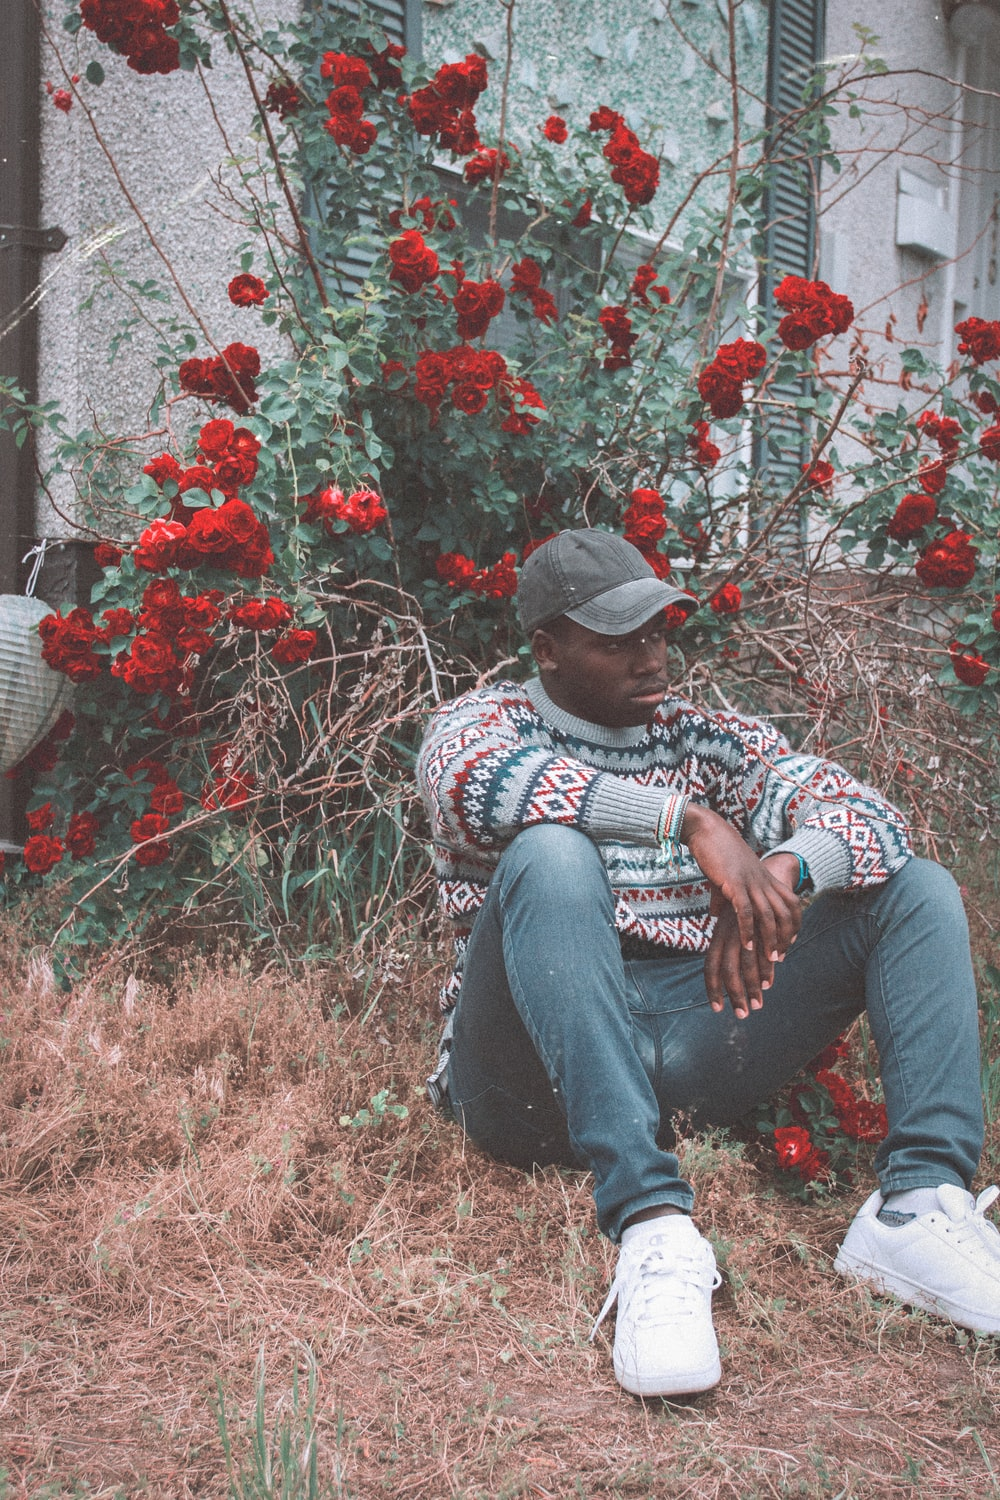 man sitting on grass in front of red flowered plant